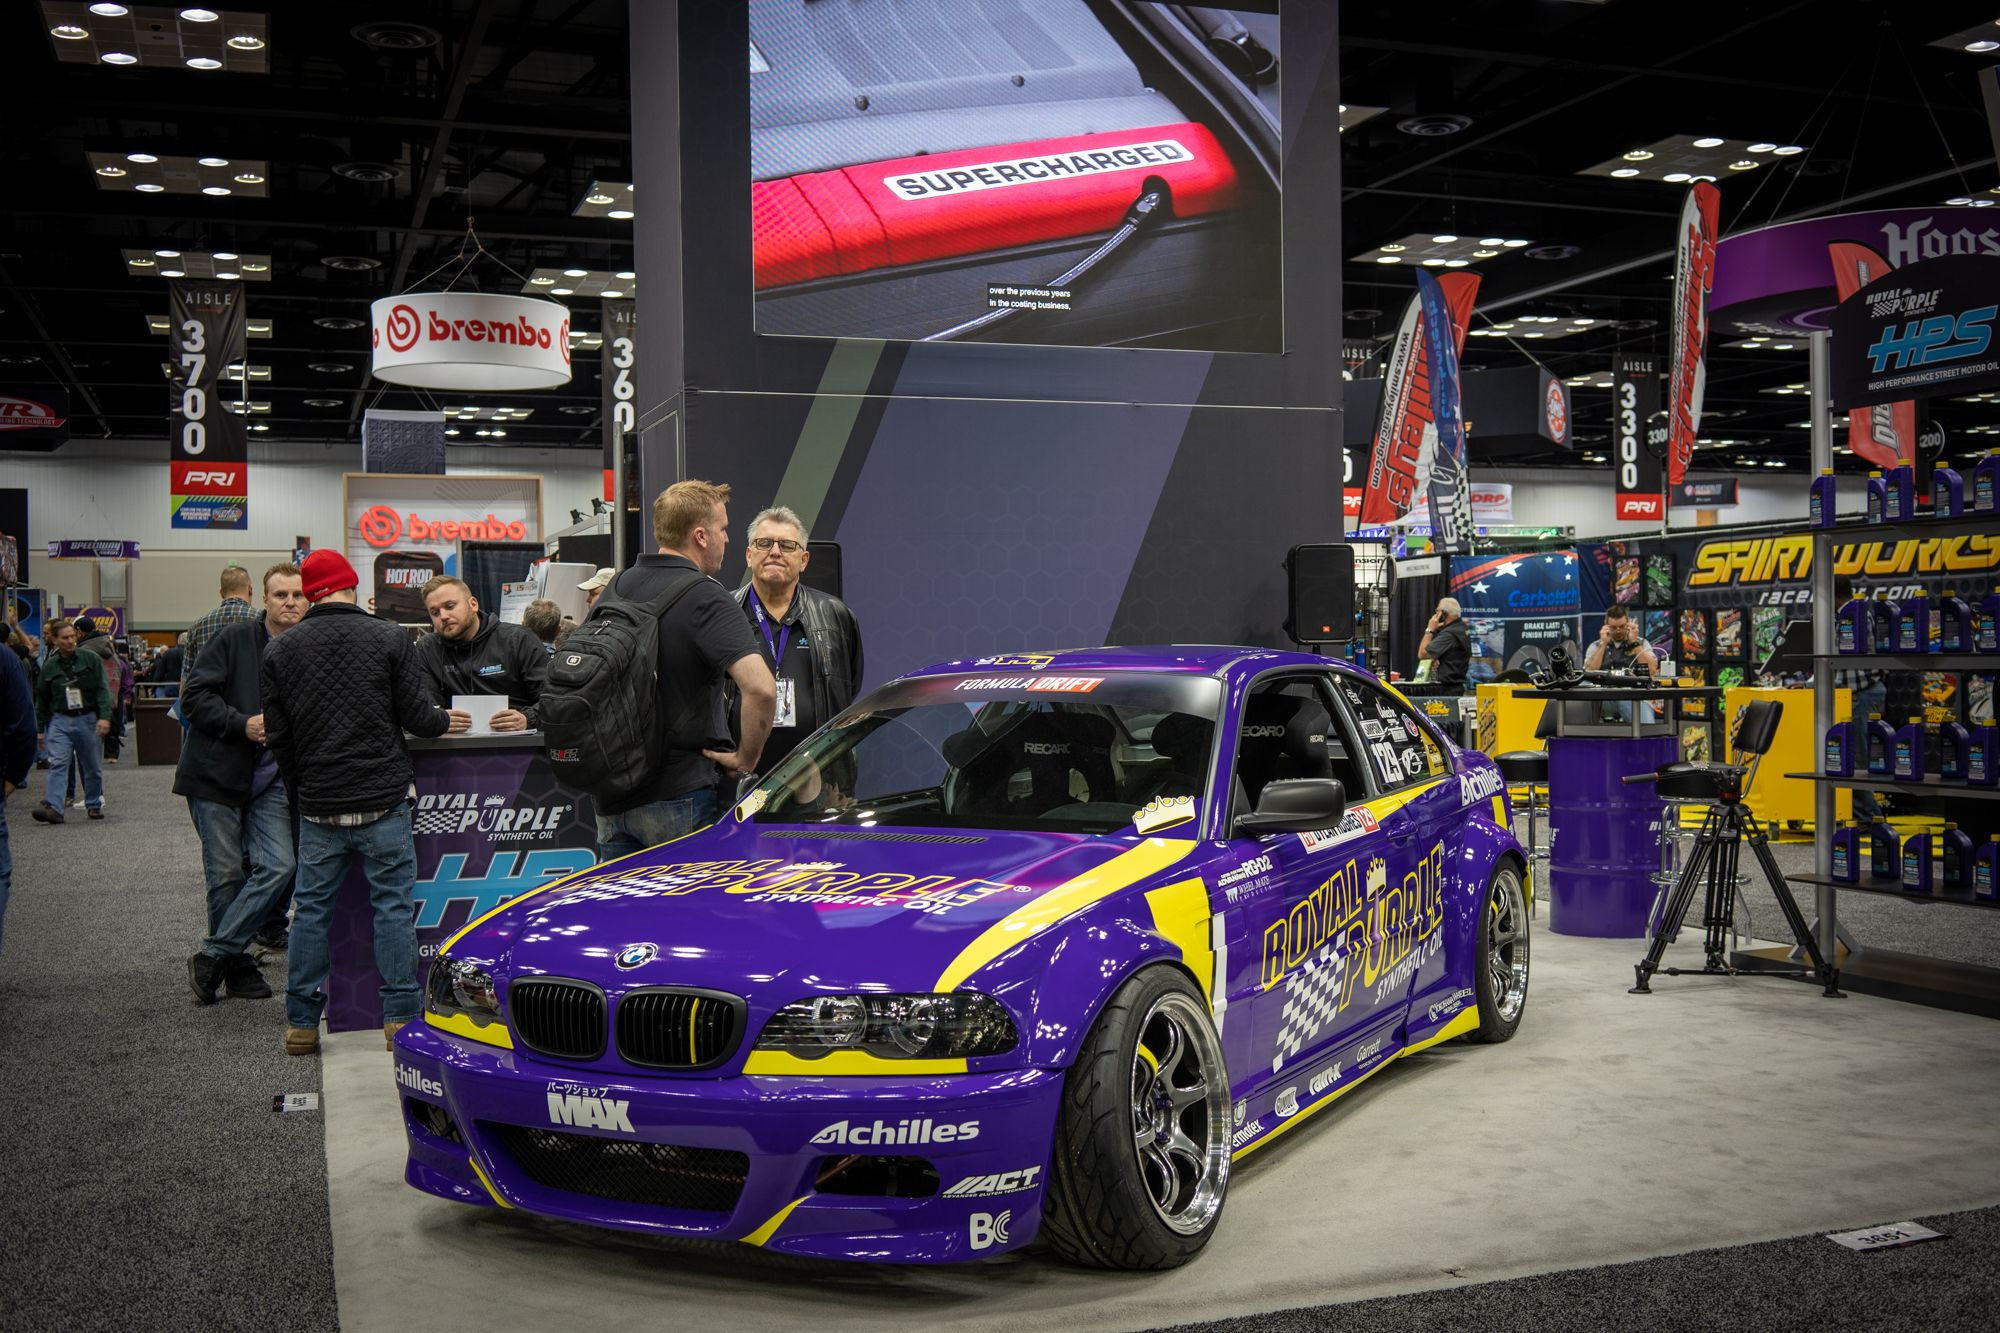 Royal Purple Official Oil 2020 Formula DRIFT BMW pasmag